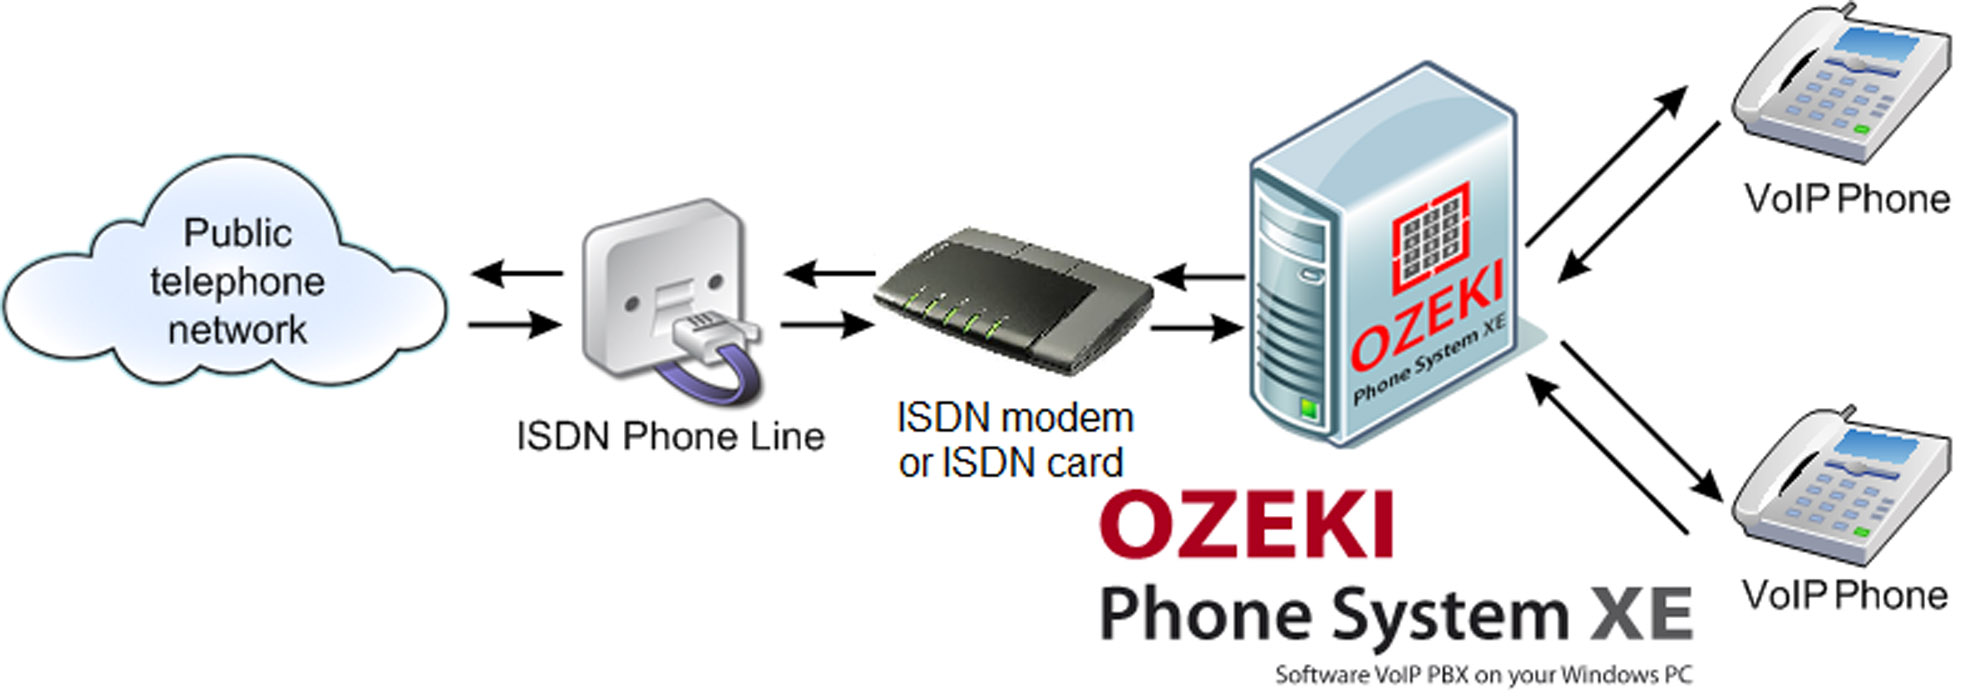 Ozeki Voip Pbx How To Connect Your Isdn Phone Line The Xe Diagram Figure 1 Connection With System